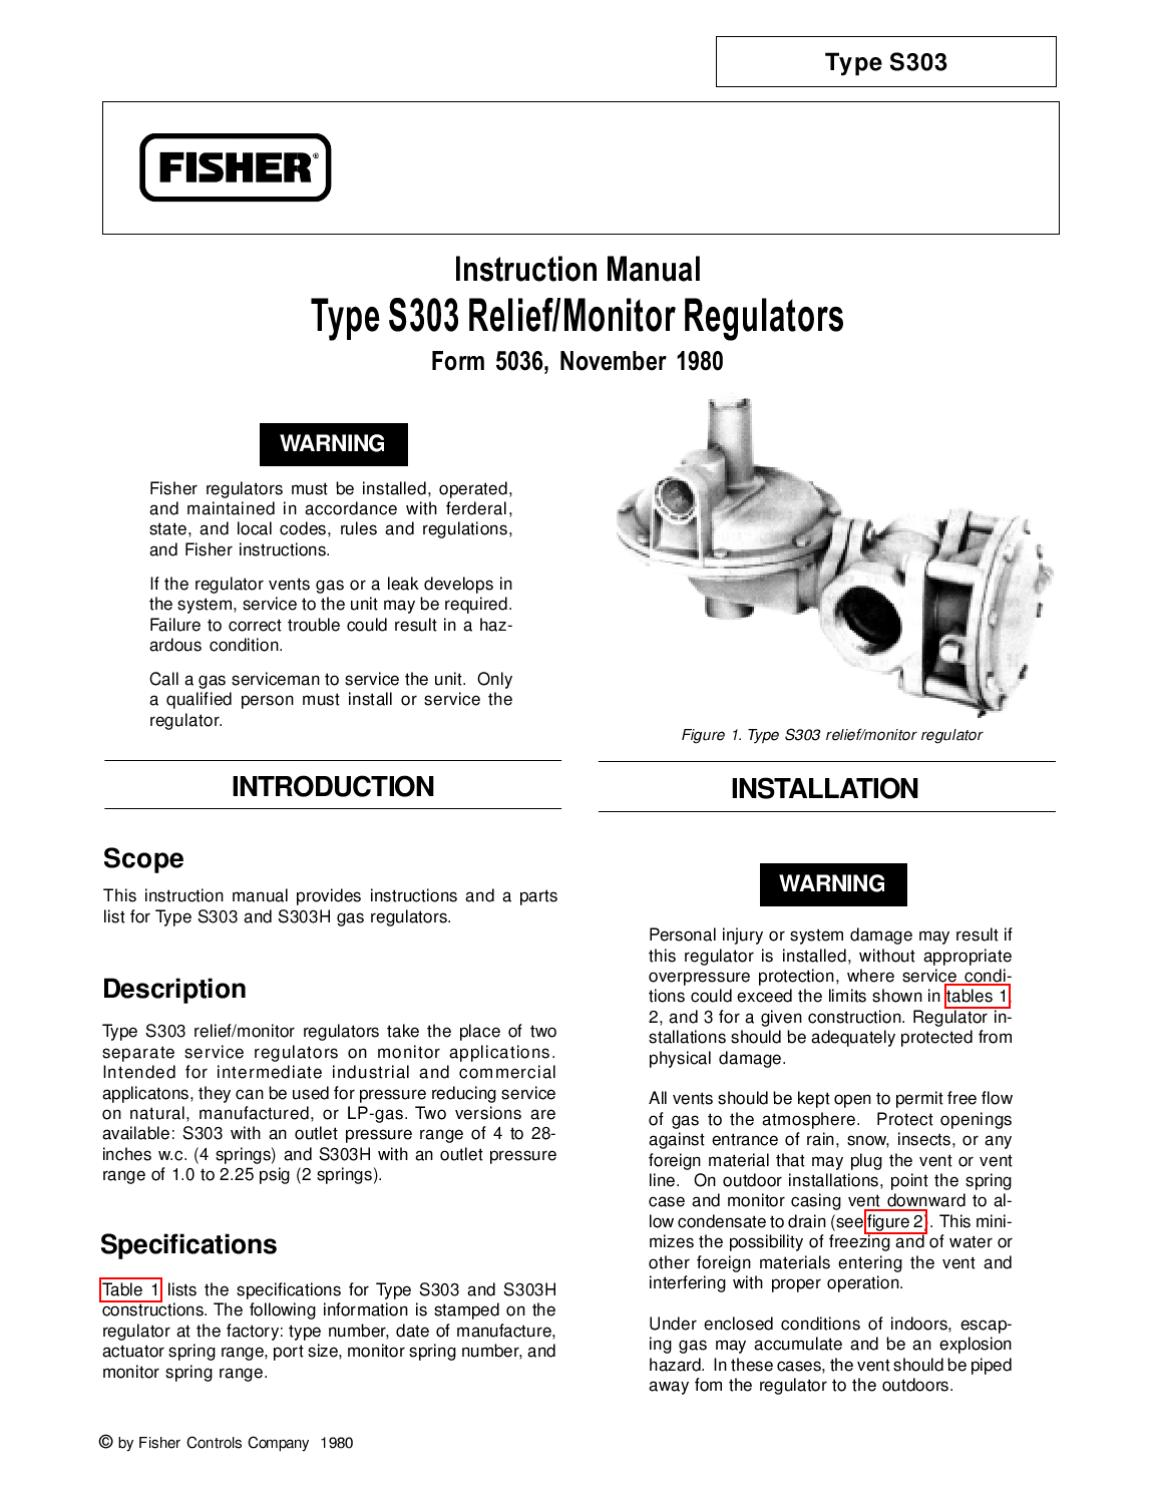 S303 Instruction Manual by RMC Process Controls & Filtration